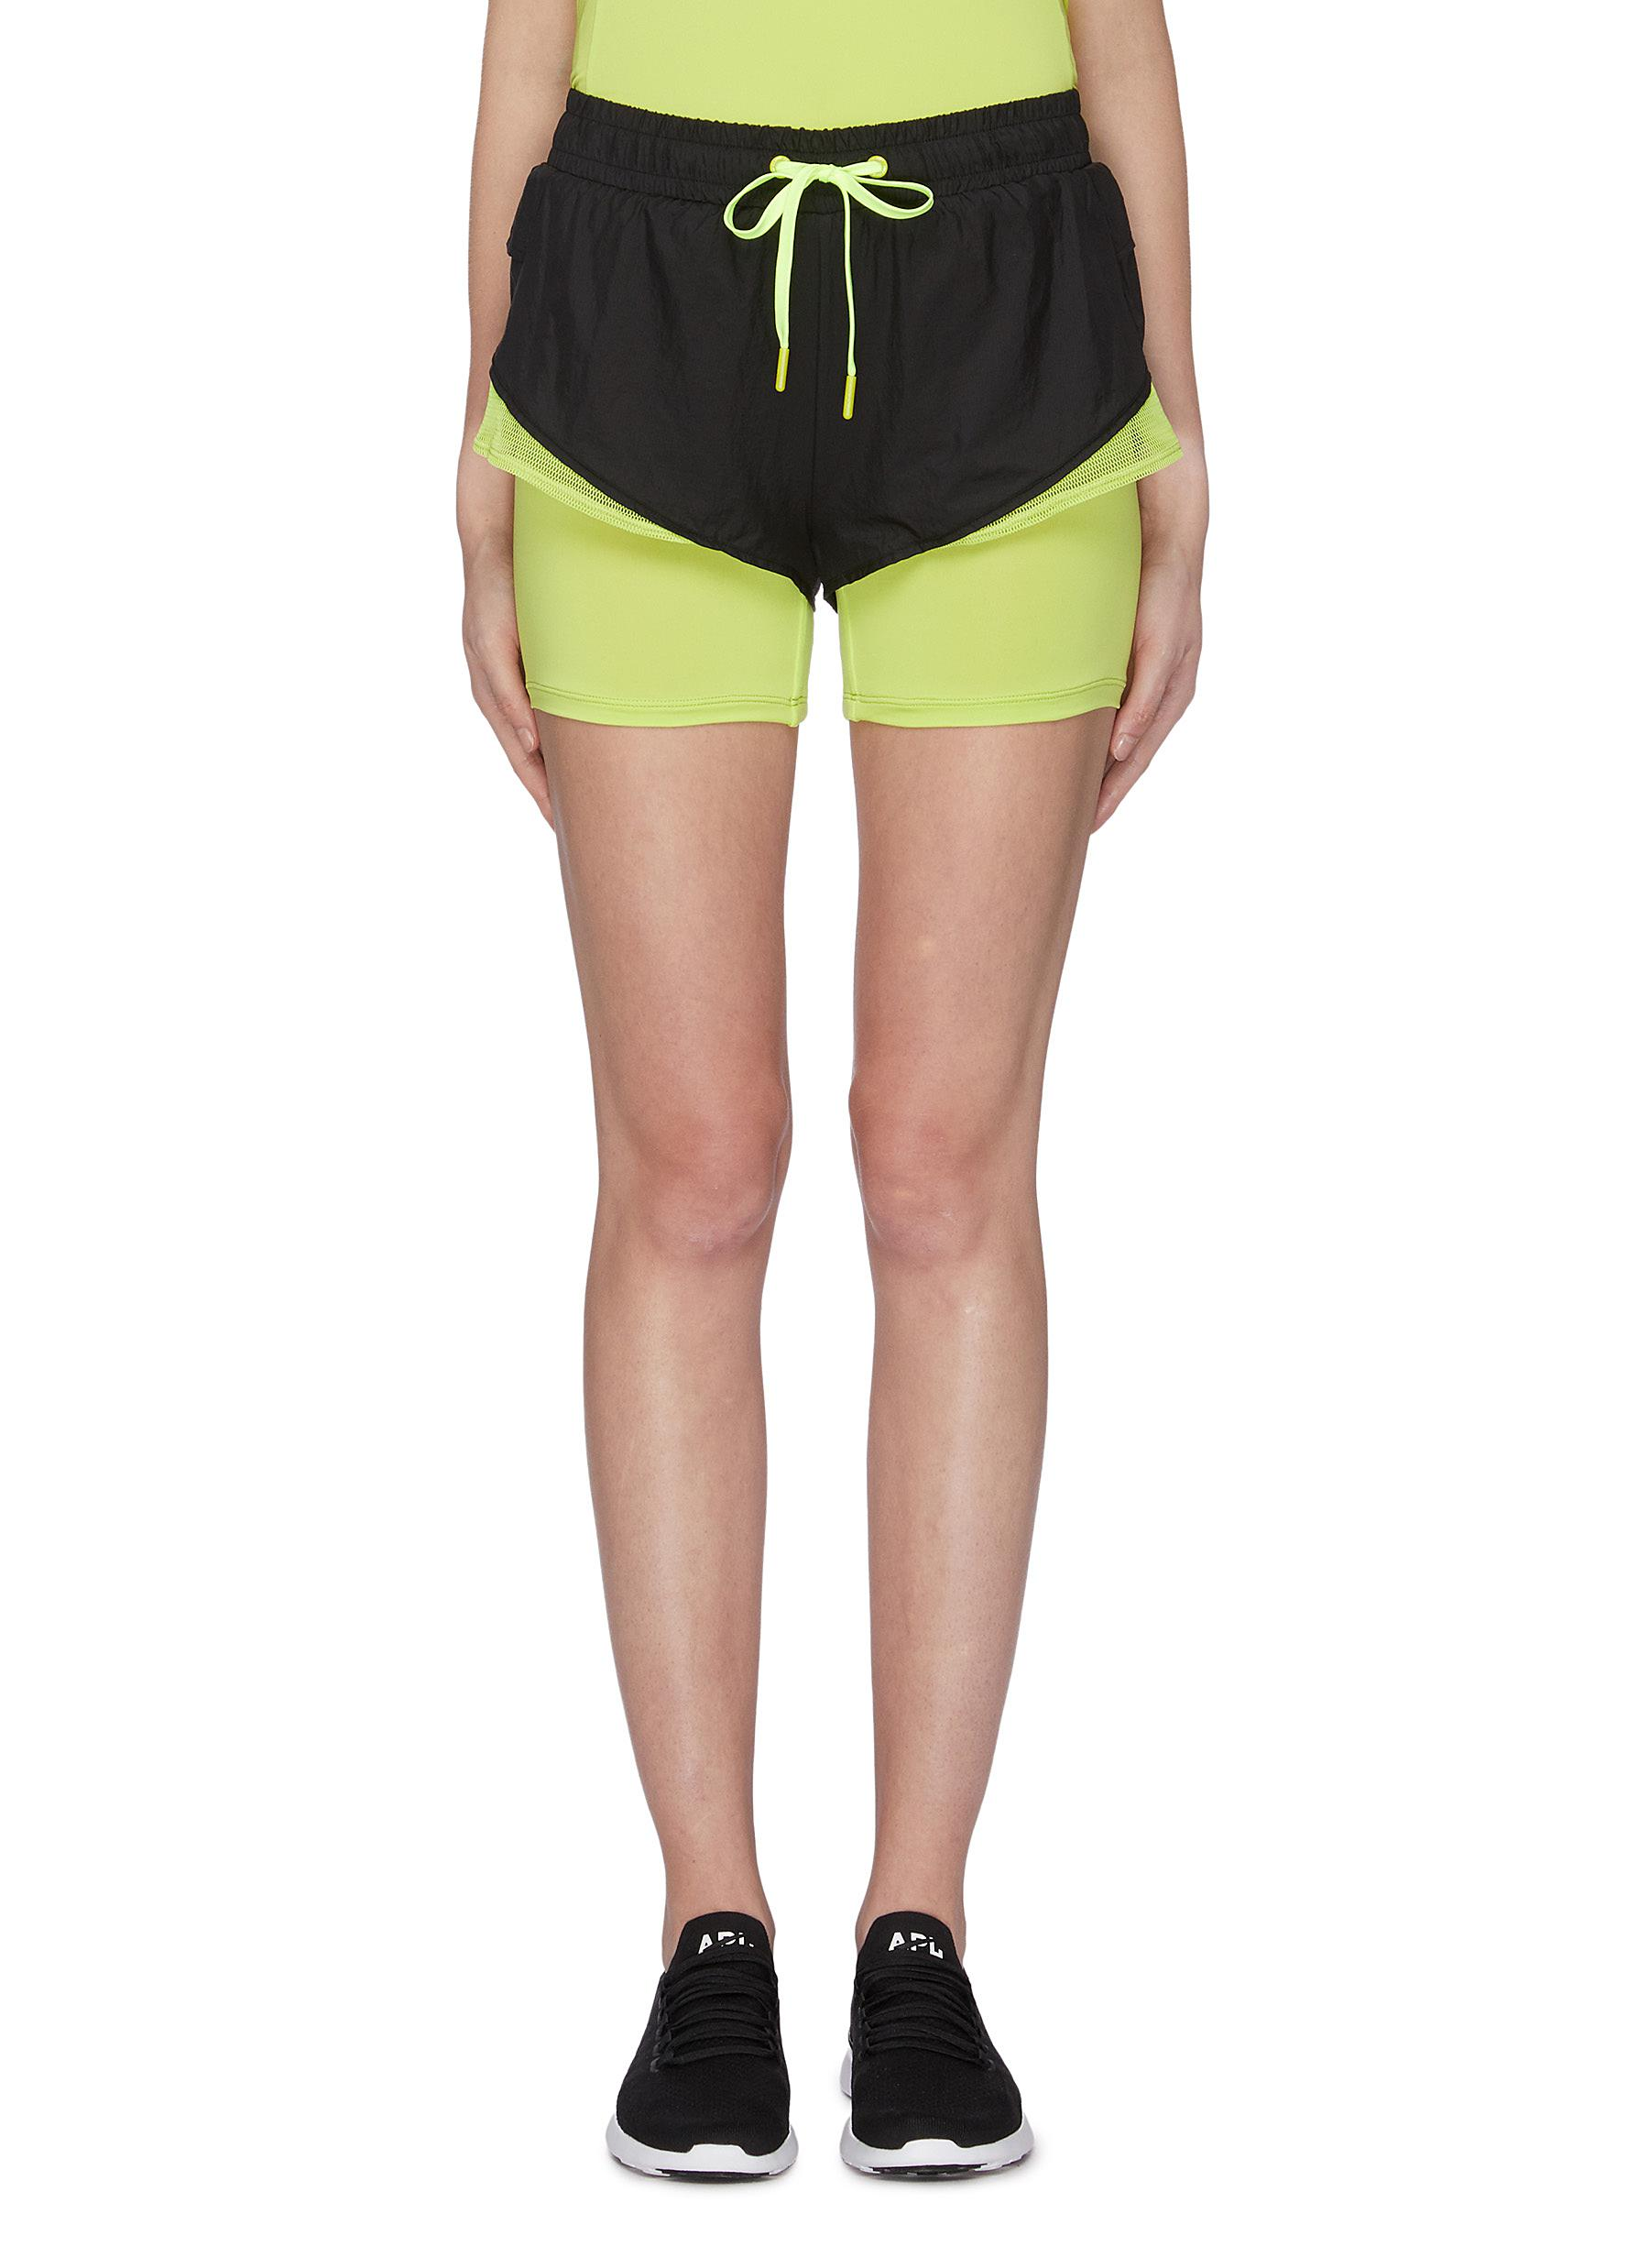 Mesh hem layered running shorts by Particle Fever